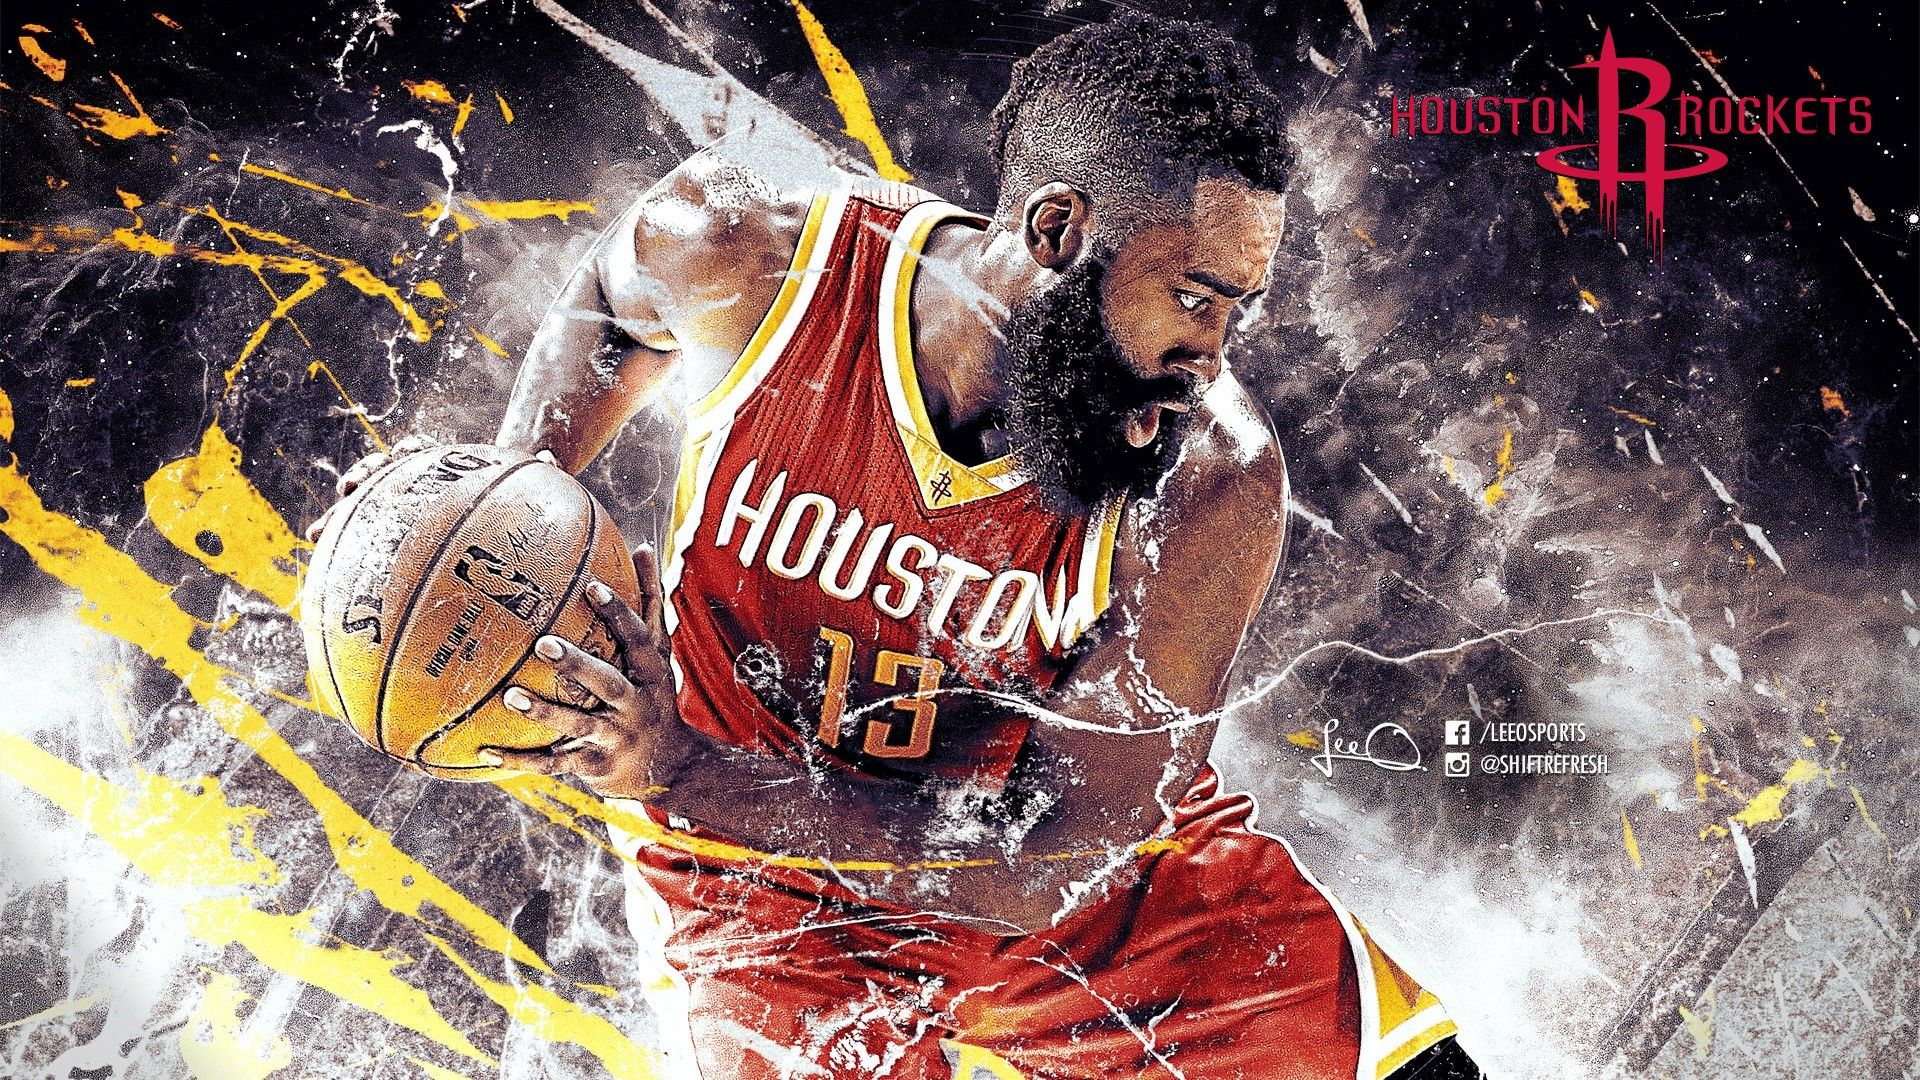 James Harden Beard Desktop Wallpapers Is The Perfect High Quality Nba Basketball Wallpaper With Hd Resolution Click Image Or Visit Button For Best Quality A